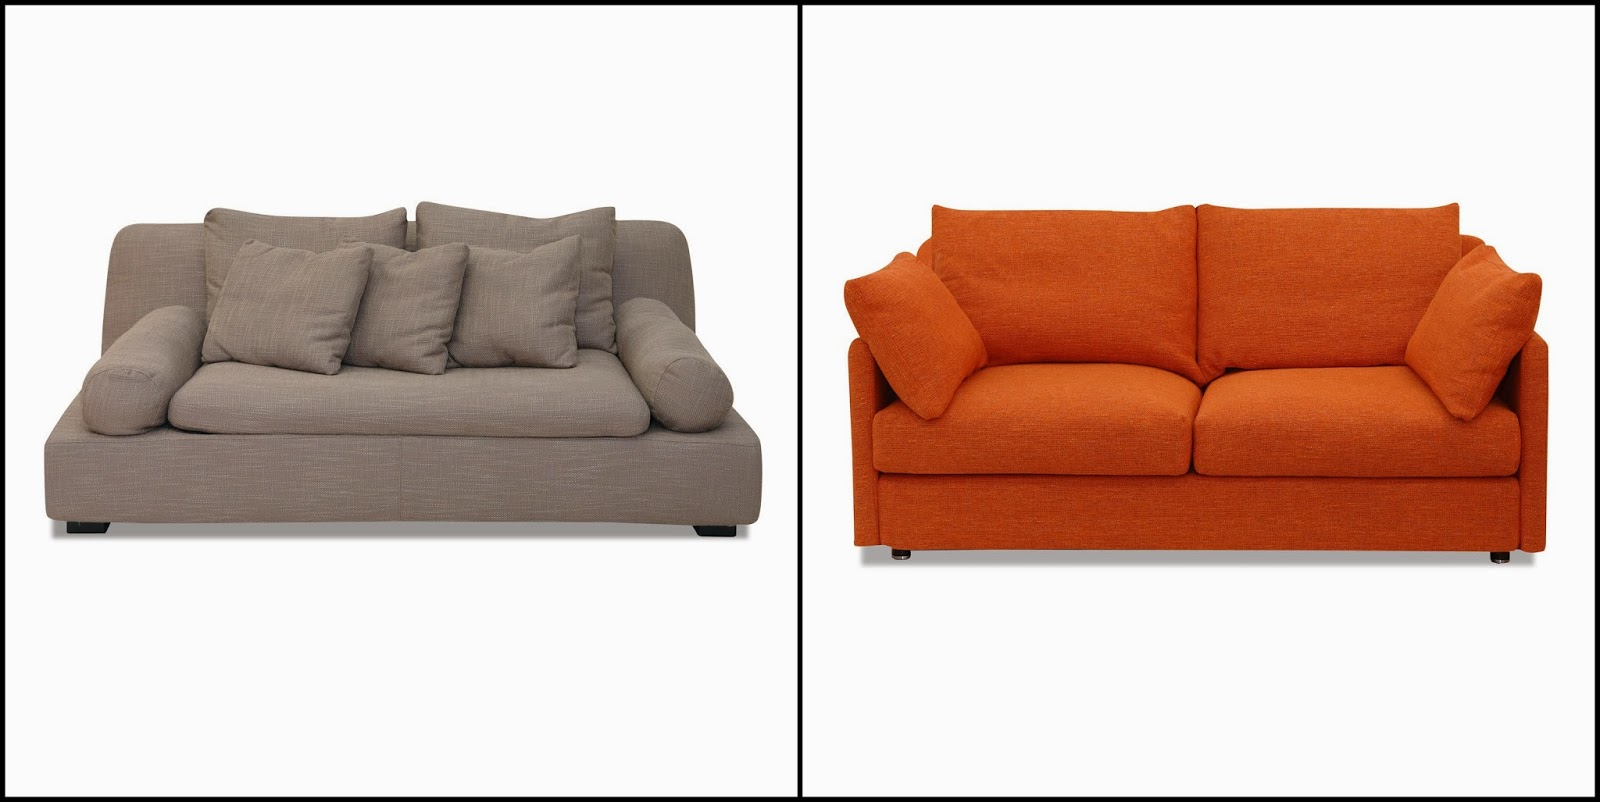 Best Quality Sofas Australia Online Furniture Store Australia Buy Designer Furniture